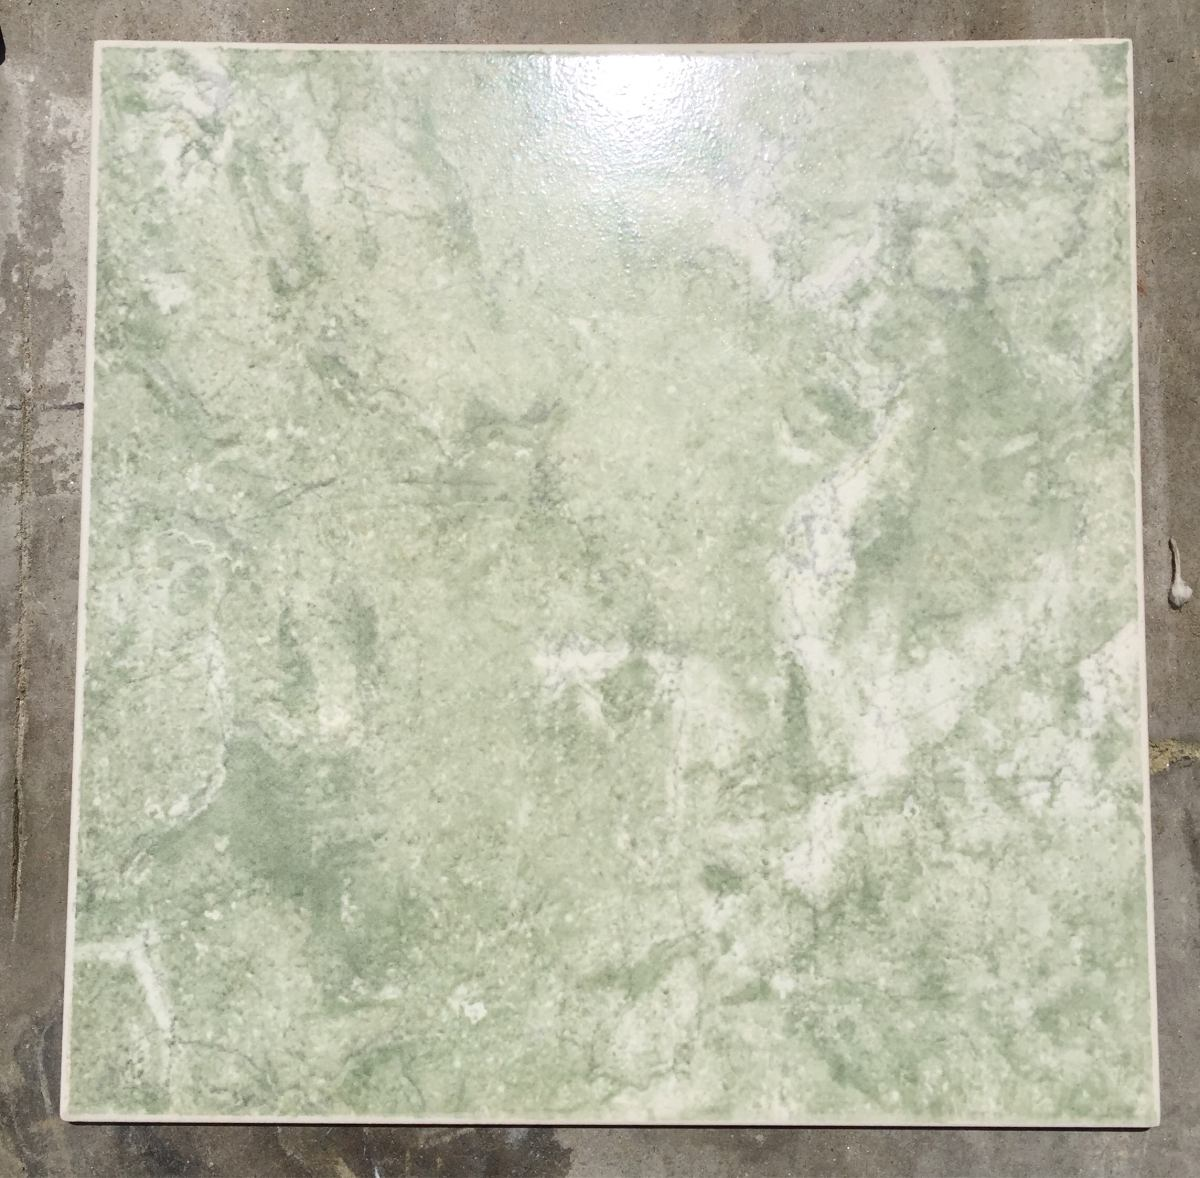 Cer Mica Michigan Verde 32x32 Para Pared Y O Piso Bs 59